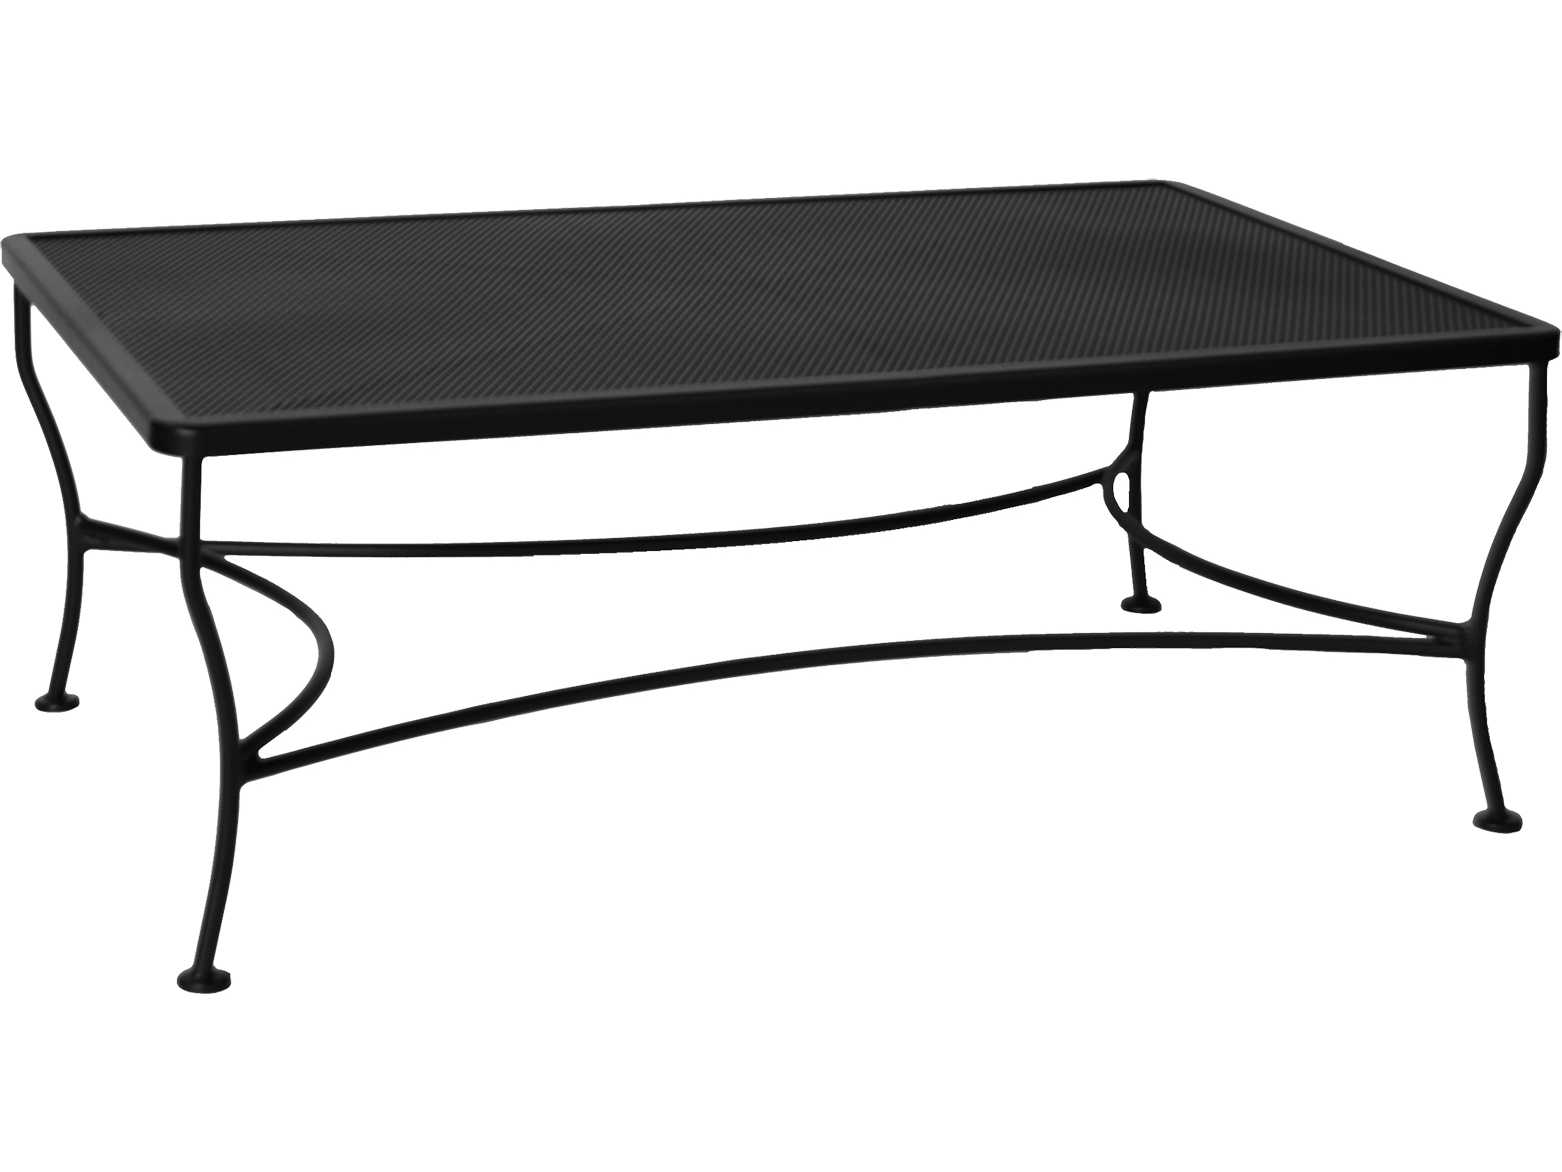 Ow lee mesh wrought iron 48 x 30 rectangular coffee table 3048 rtmot Wrought iron coffee tables